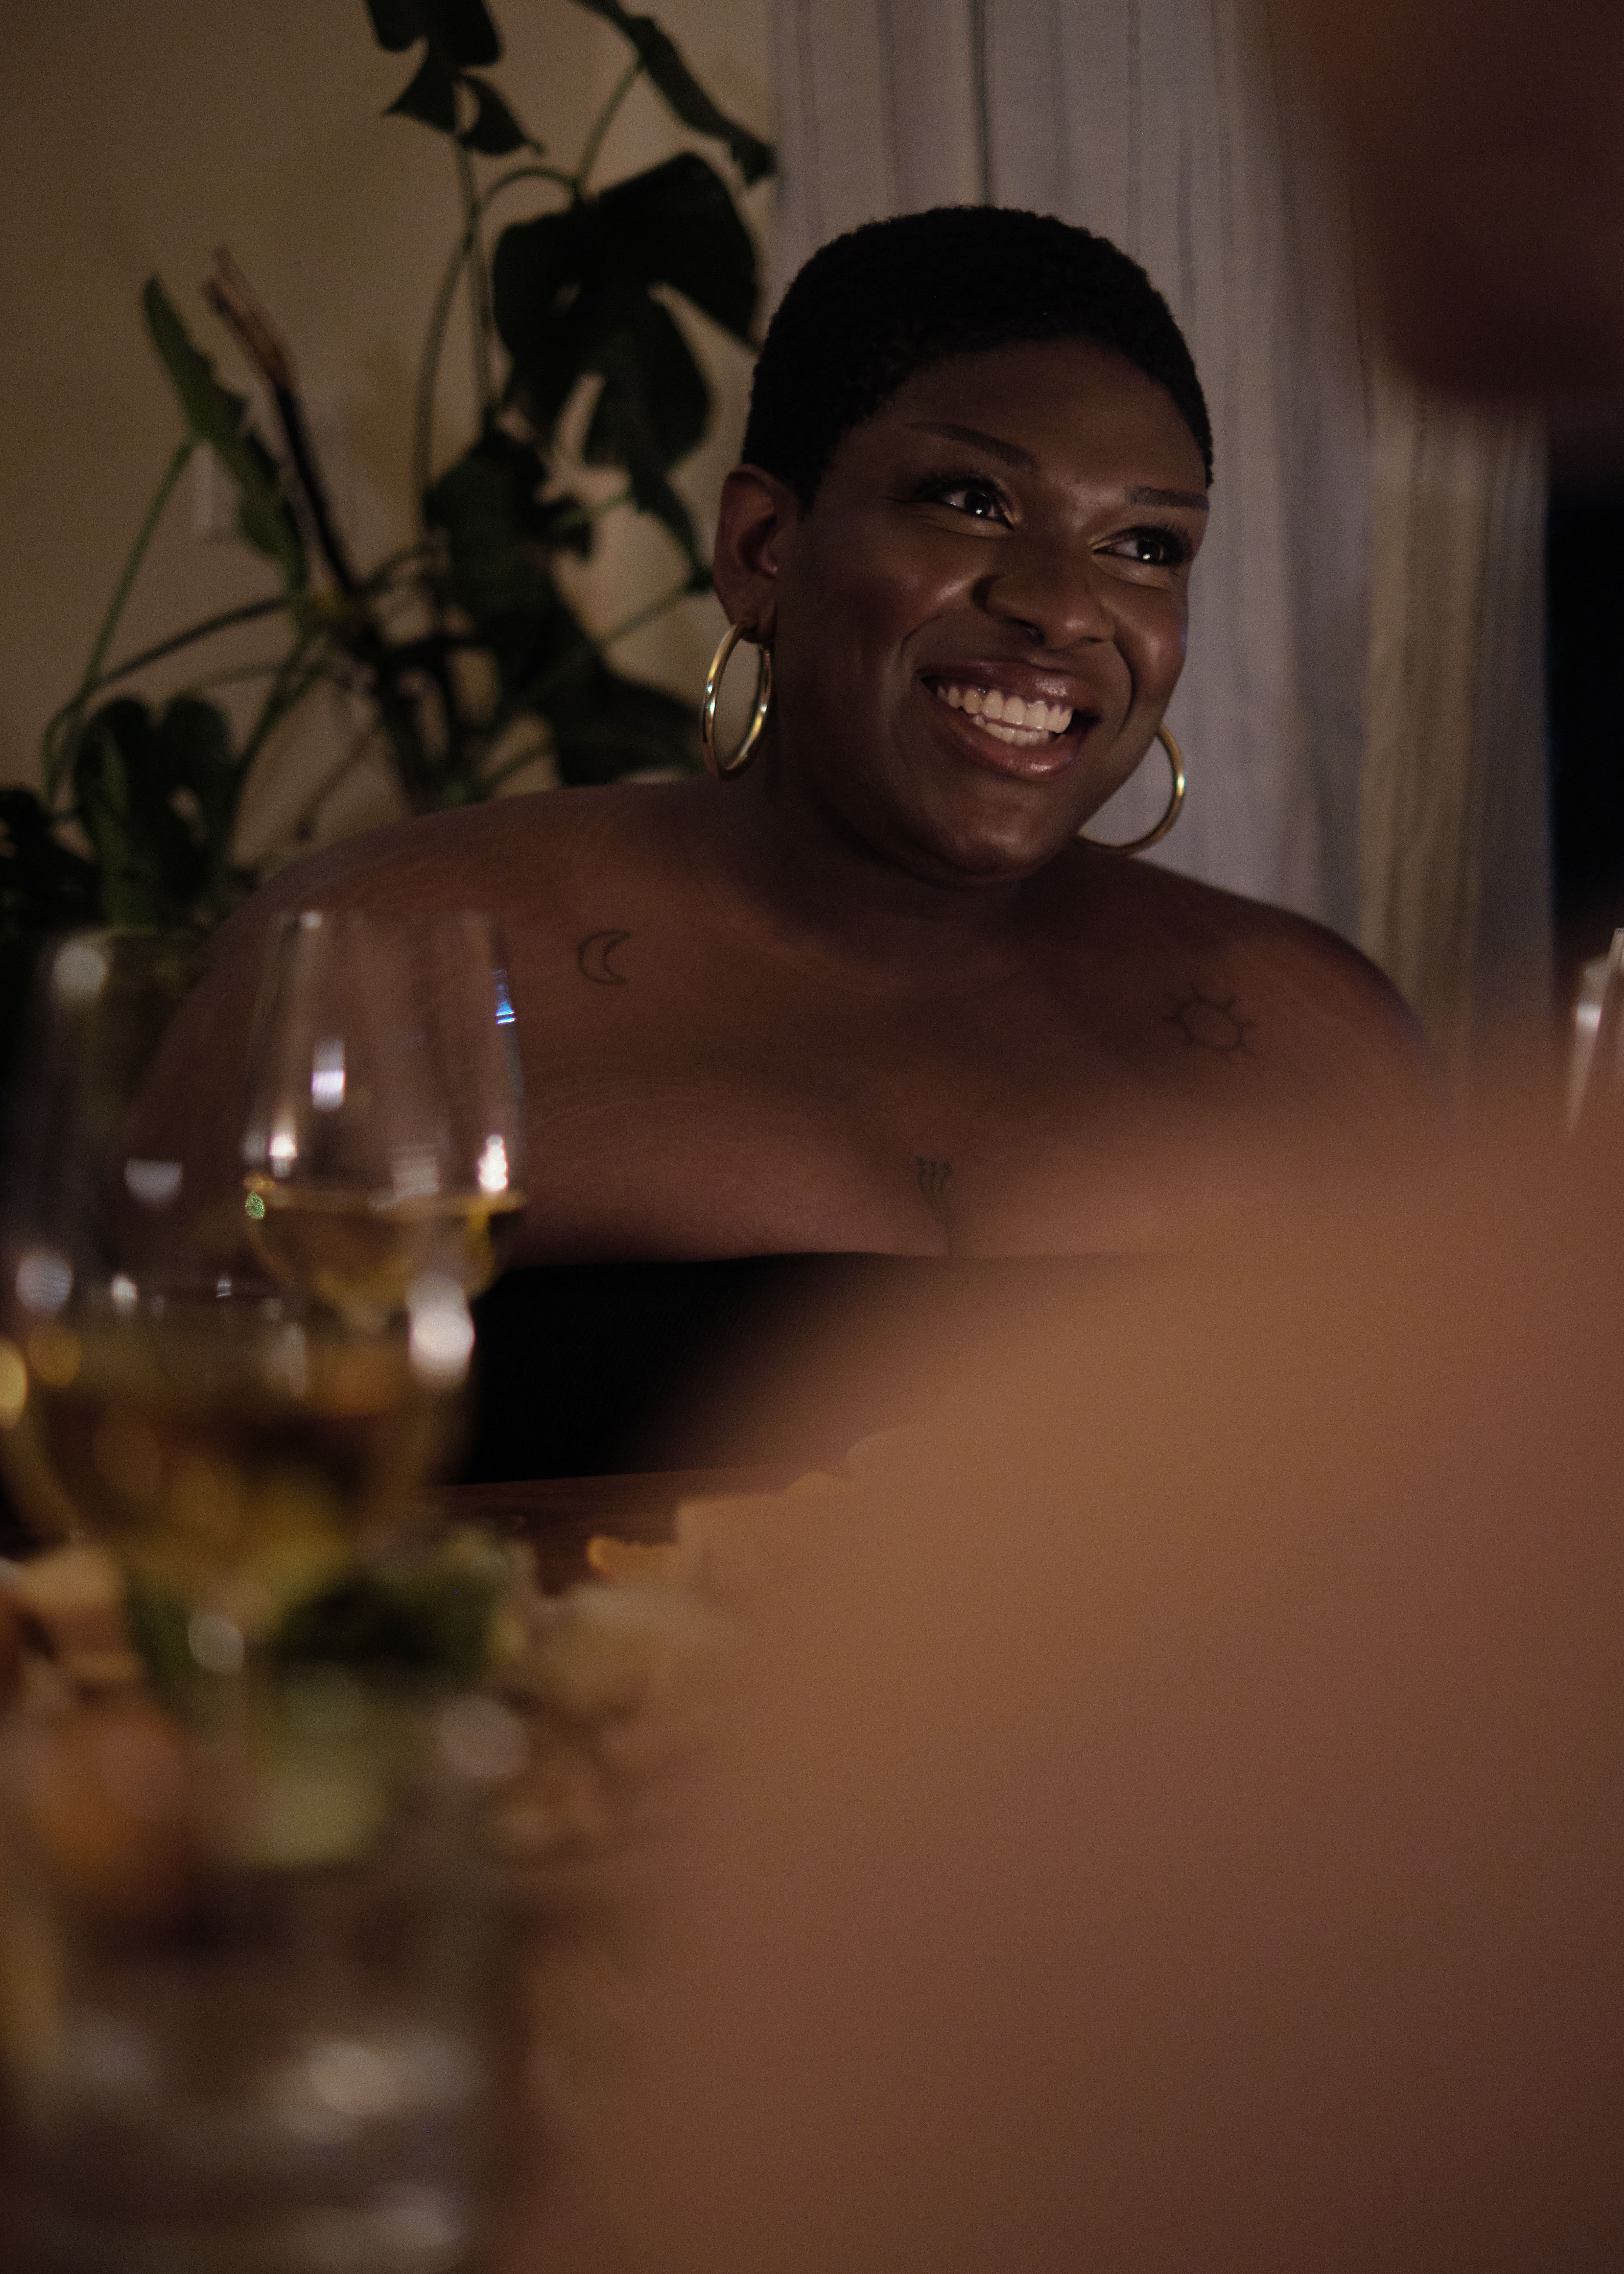 A non-binary trans woman smiling at a dinner party